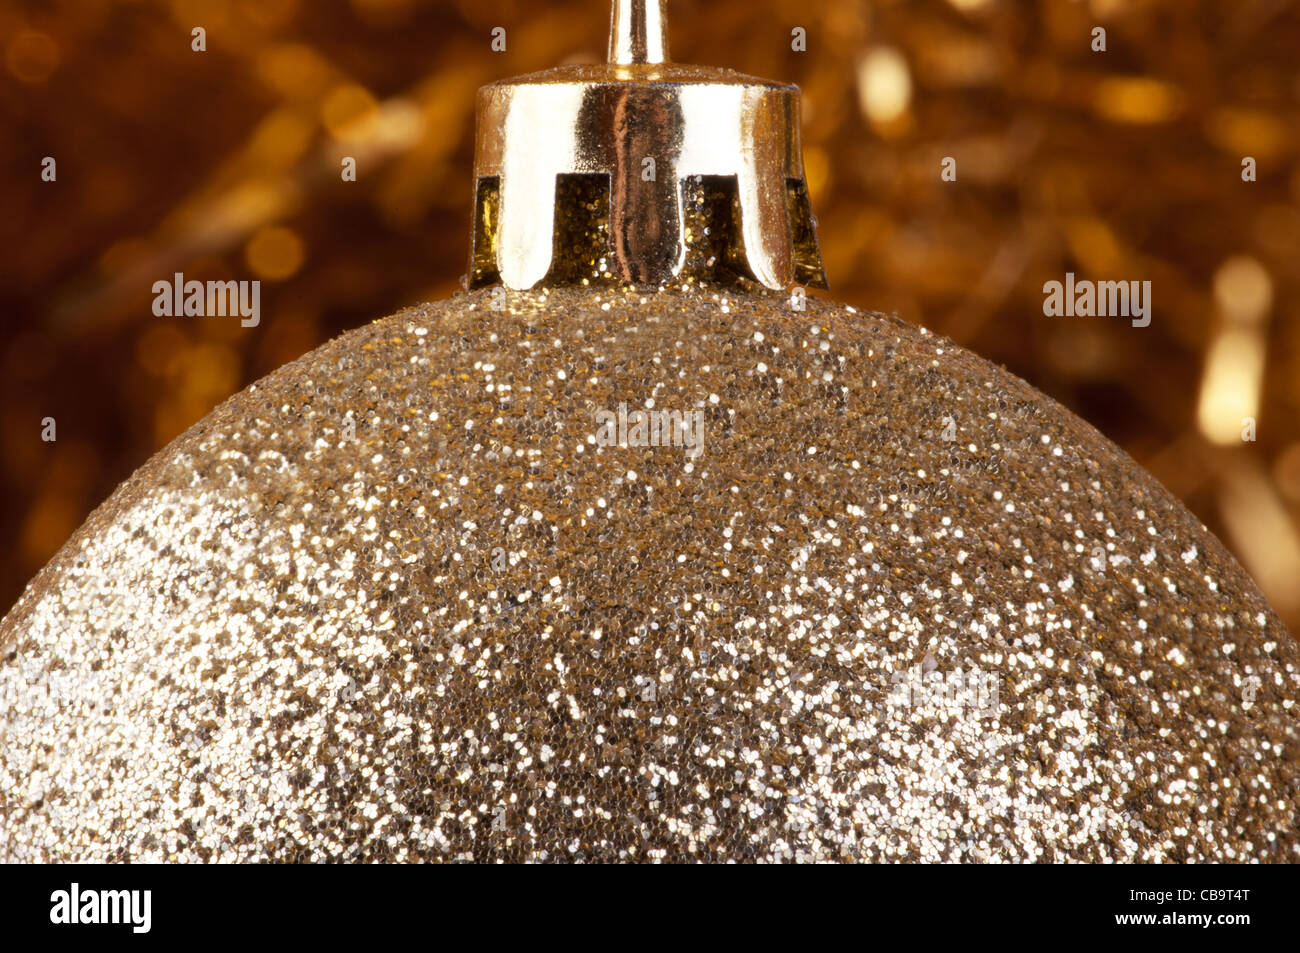 Golden bauble on the Christmas tree. Picture in color gold symbolizes wealth, rich and luxurious Christmas. - Stock Image